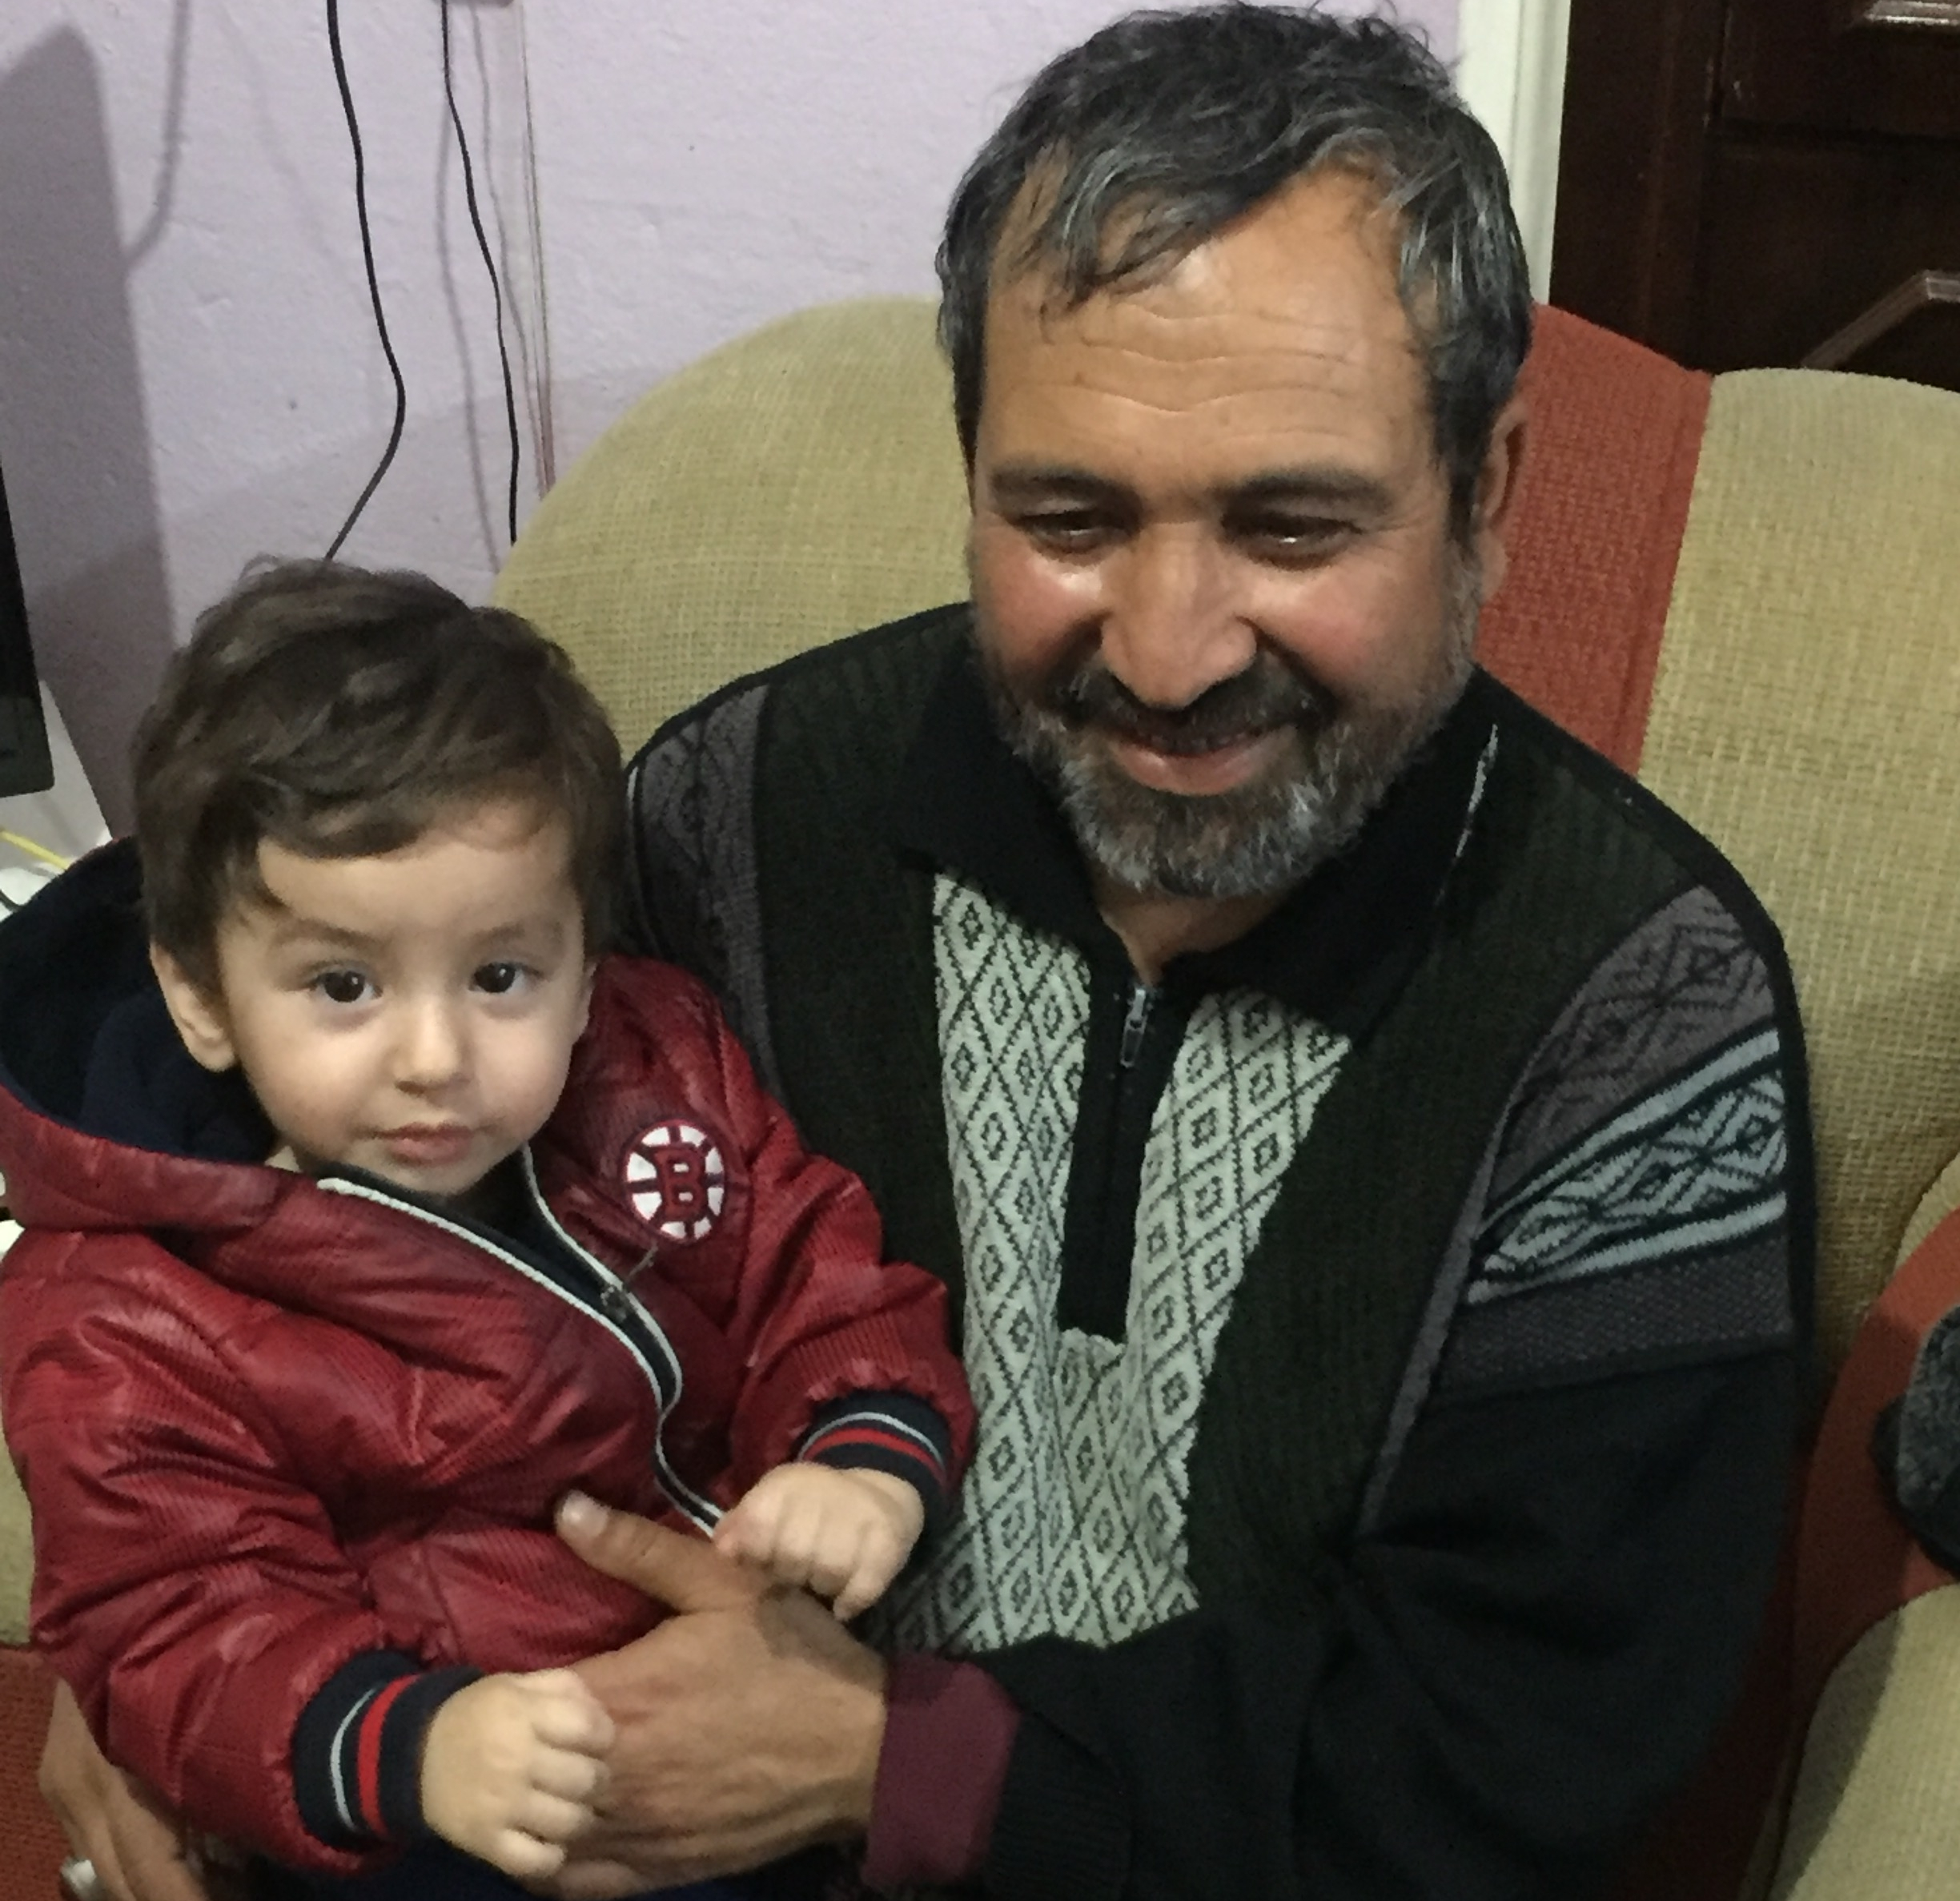 """""""The biggest challenge is not having a clear situation, not knowing what will happen to you. Financial problems can be solved, something figured out, but not having a clear future really is worrying for us."""" Ali, a 48-year-old Afghan refugee telling RI about one of the most widely shared concerns among refugees in Turkey."""